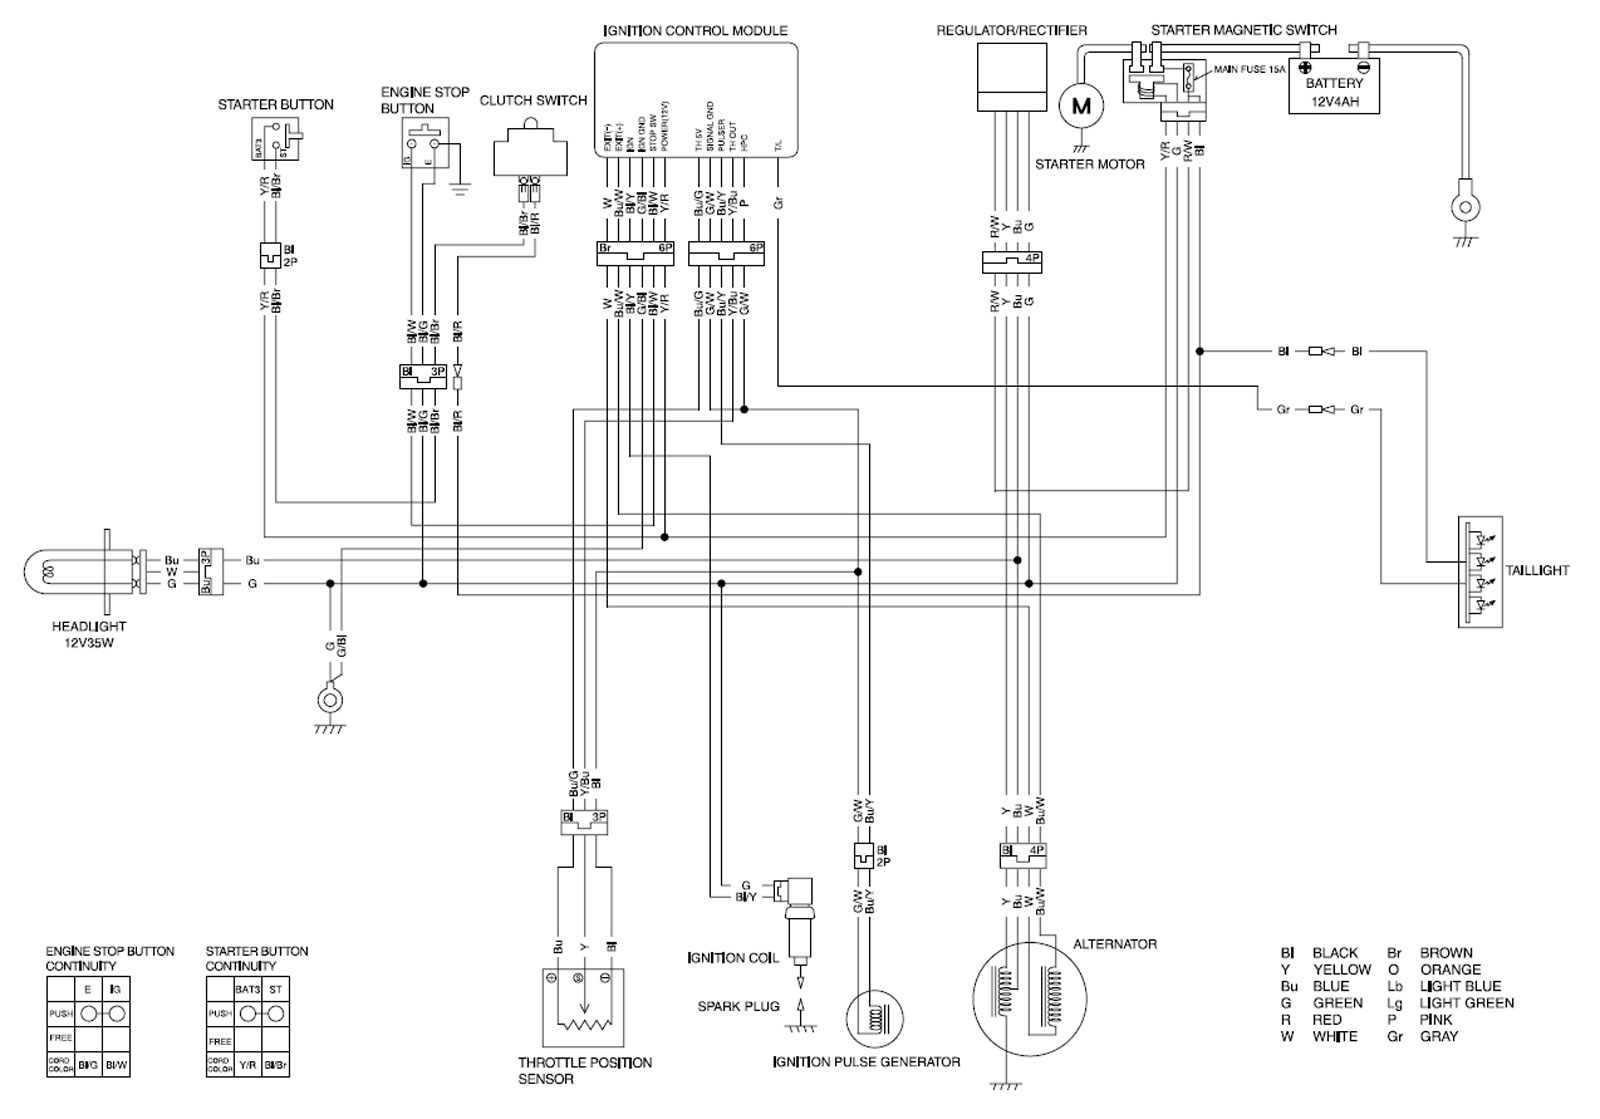 dc voltmeter wiring diagram rheostat wiring diagram wiring diagram  at creativeand.co